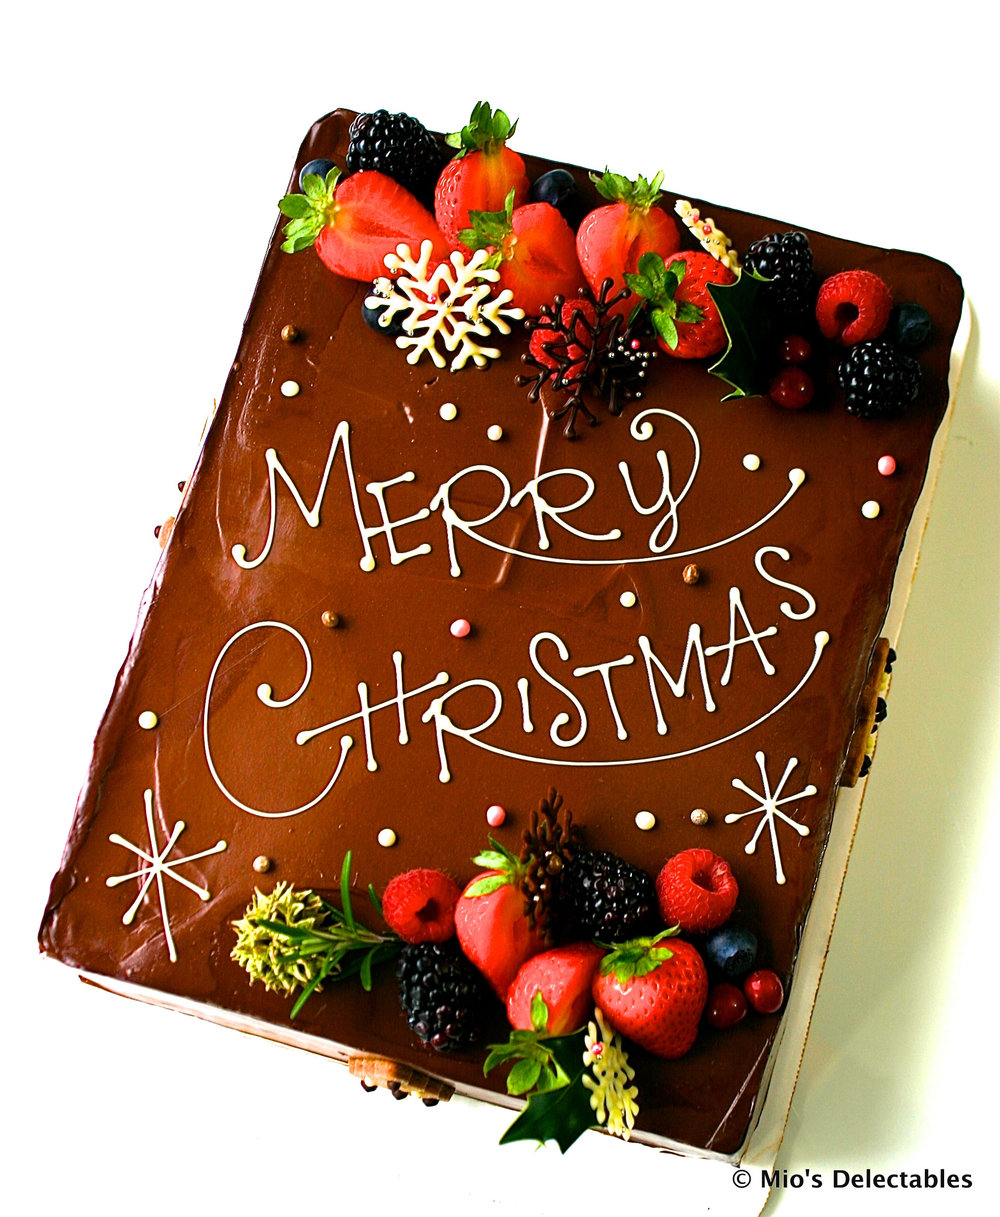 """SOLD OUT  *MIO'S DELECTABLES JAPANESE STYLE CHOCOLATE CHRISTMAS SHORTCAKE *1/8 Sheet Strawberry Short Cake (9"""" x 6"""") (23cm x 15cm) Chocolate $60 *1/4 Sheet Strawberry Short Cake (9"""" x 12"""") (23cmx 30cm) Chocolate $105  https://www.miosdelectables.com/christmas-cake-preorder/mios-delectables-japanese-style-chocolate-christmas-cake"""